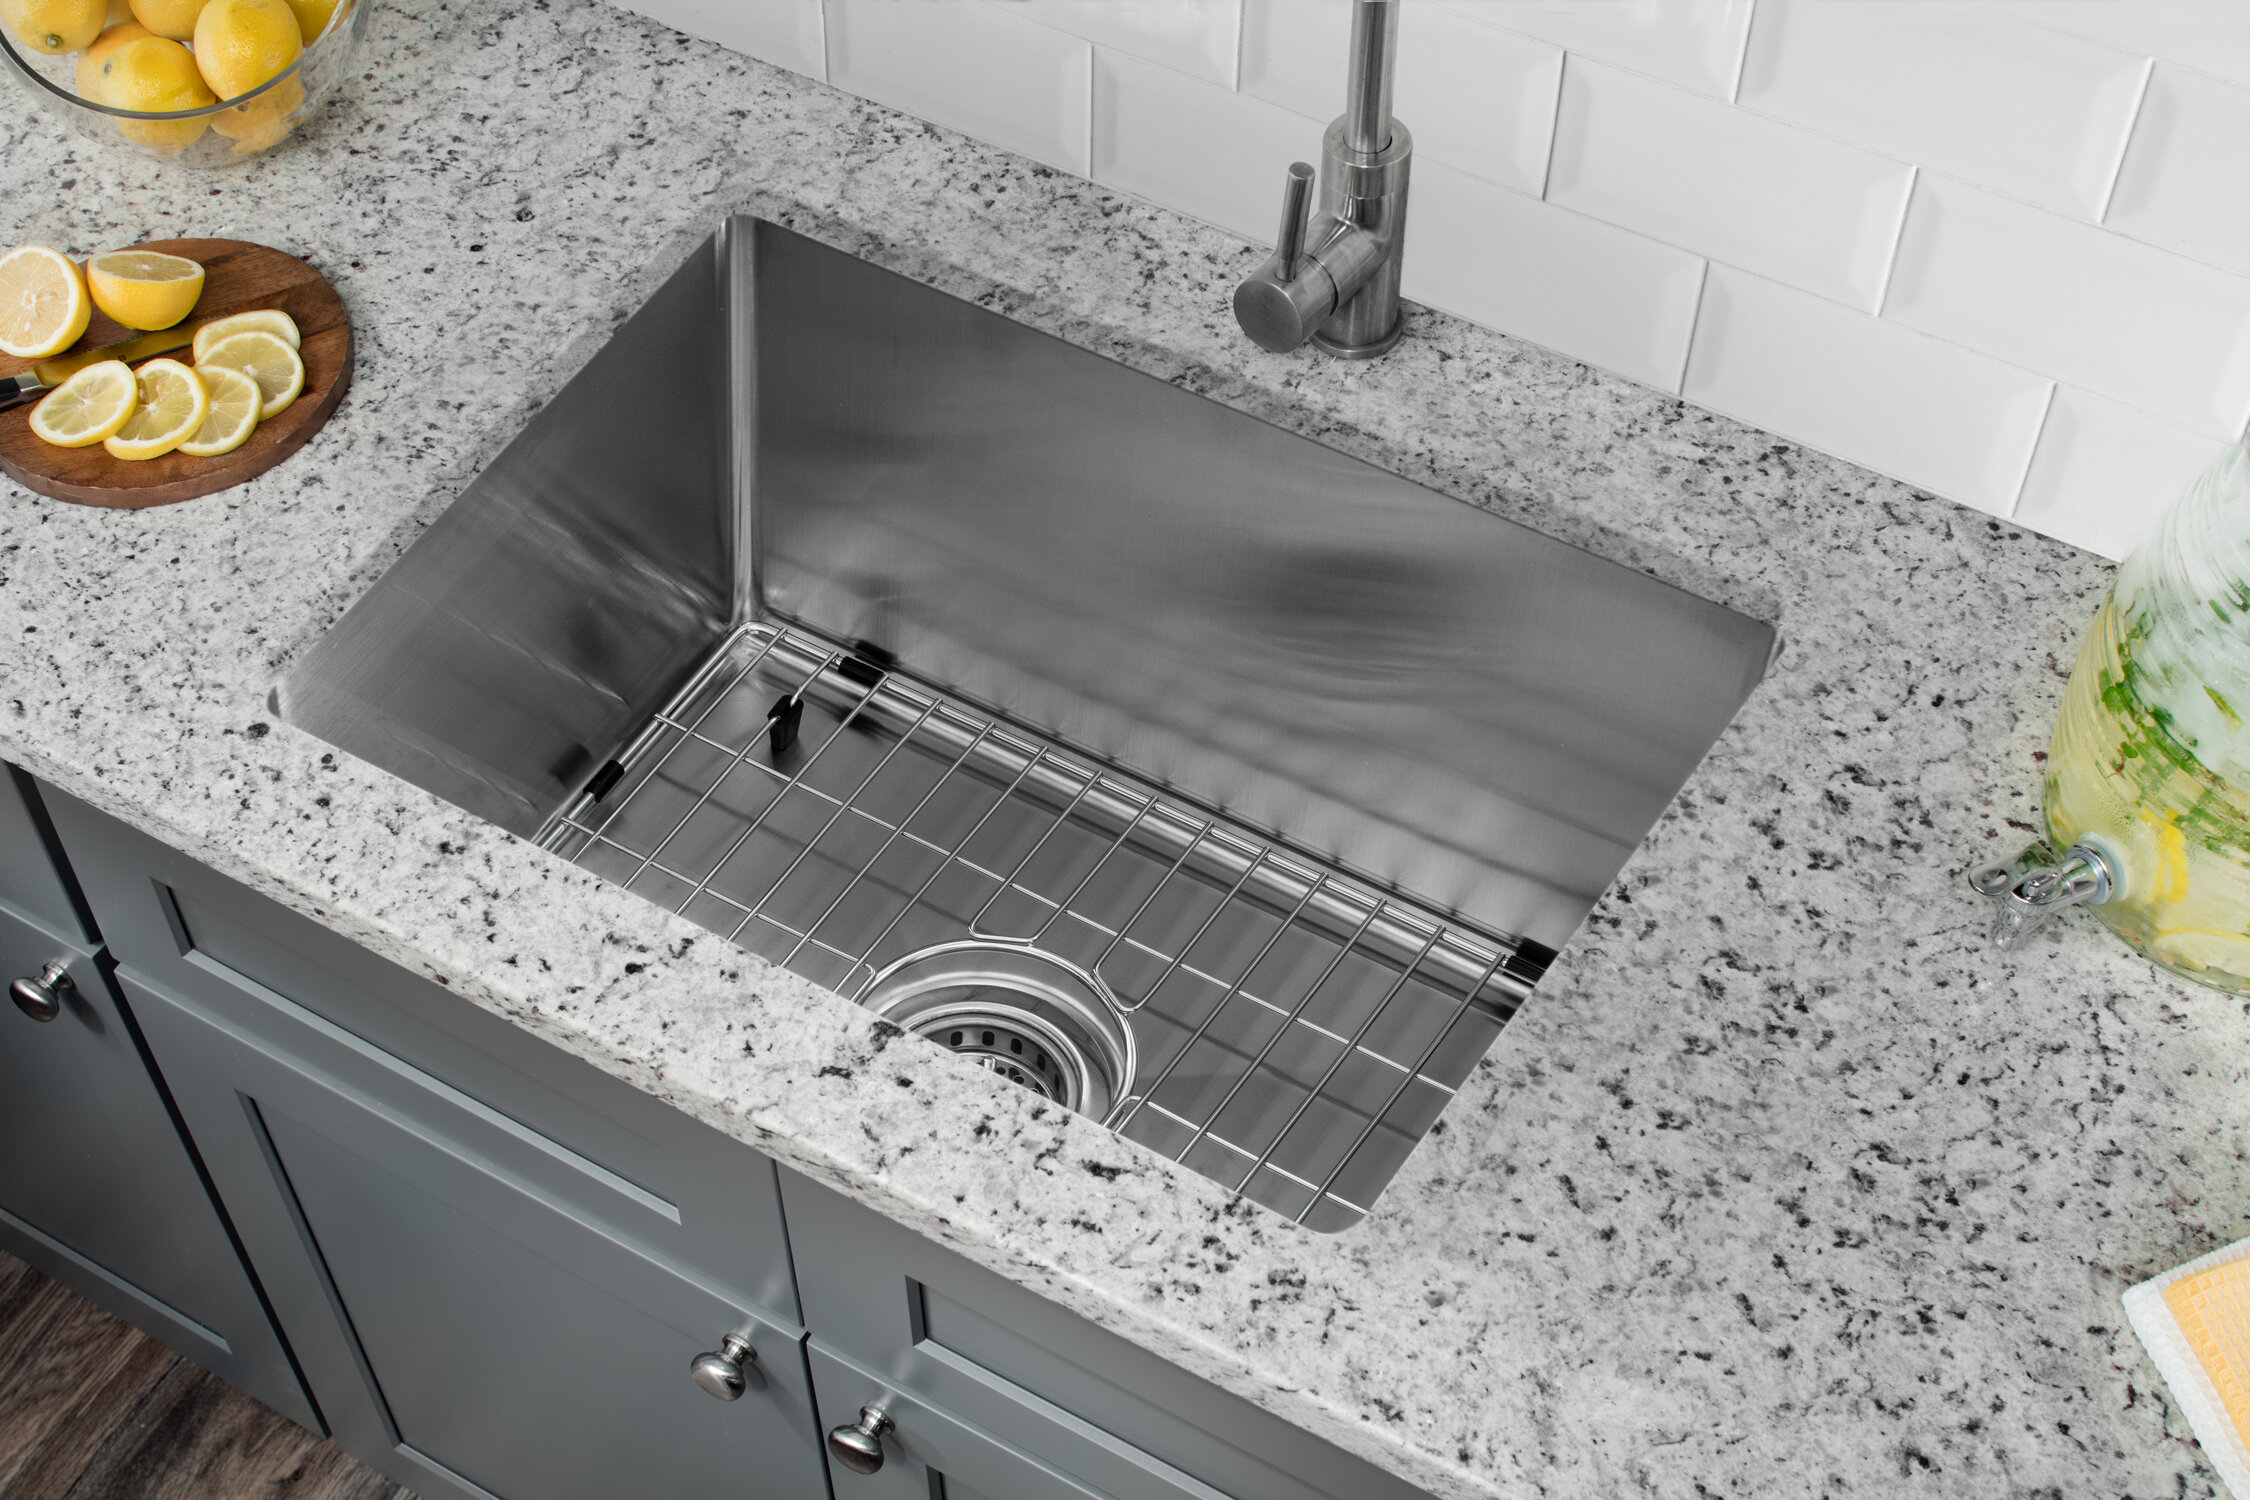 Soleil Radius 16 Gauge Stainless Steel 15'' x 20'' Single Bowl ... on granite kitchen sink ideas, solid surface kitchen sink ideas, bathroom accessories ideas, undermount kitchen sink brands, bathroom furniture ideas, white kitchen sink ideas, bathroom vanity ideas, contemporary bathroom ideas, shower ideas, bathroom set ideas, freestanding kitchen sink ideas, home ideas, bathroom lighting ideas, stainless kitchen sink ideas, bathroom makeover ideas, farmhouse kitchen sink ideas, undermount kitchen sink support, corner kitchen sink ideas,